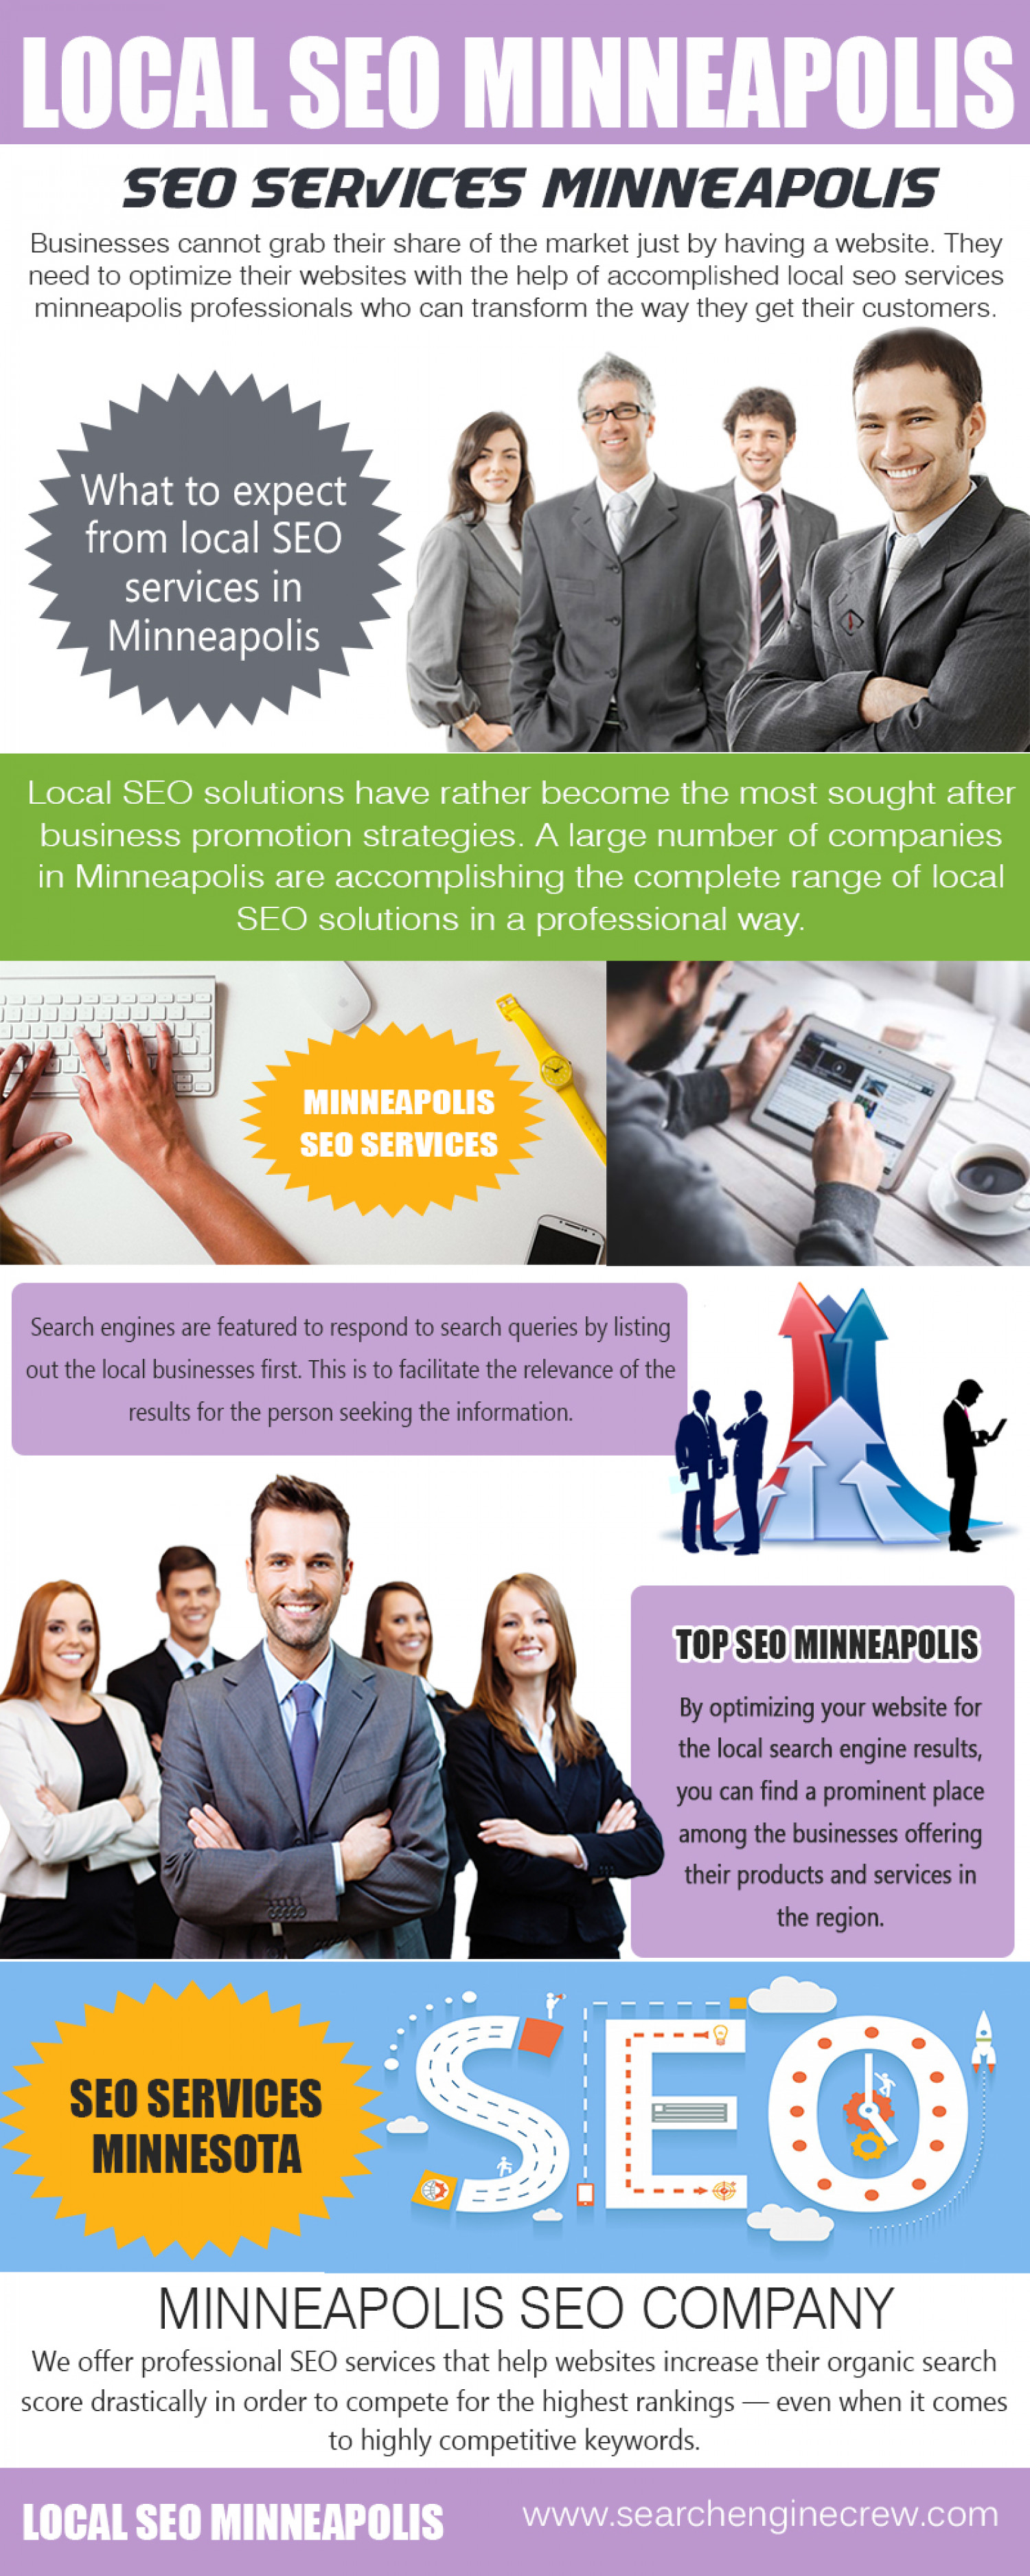 Digital Marketing Companies Minneapolis